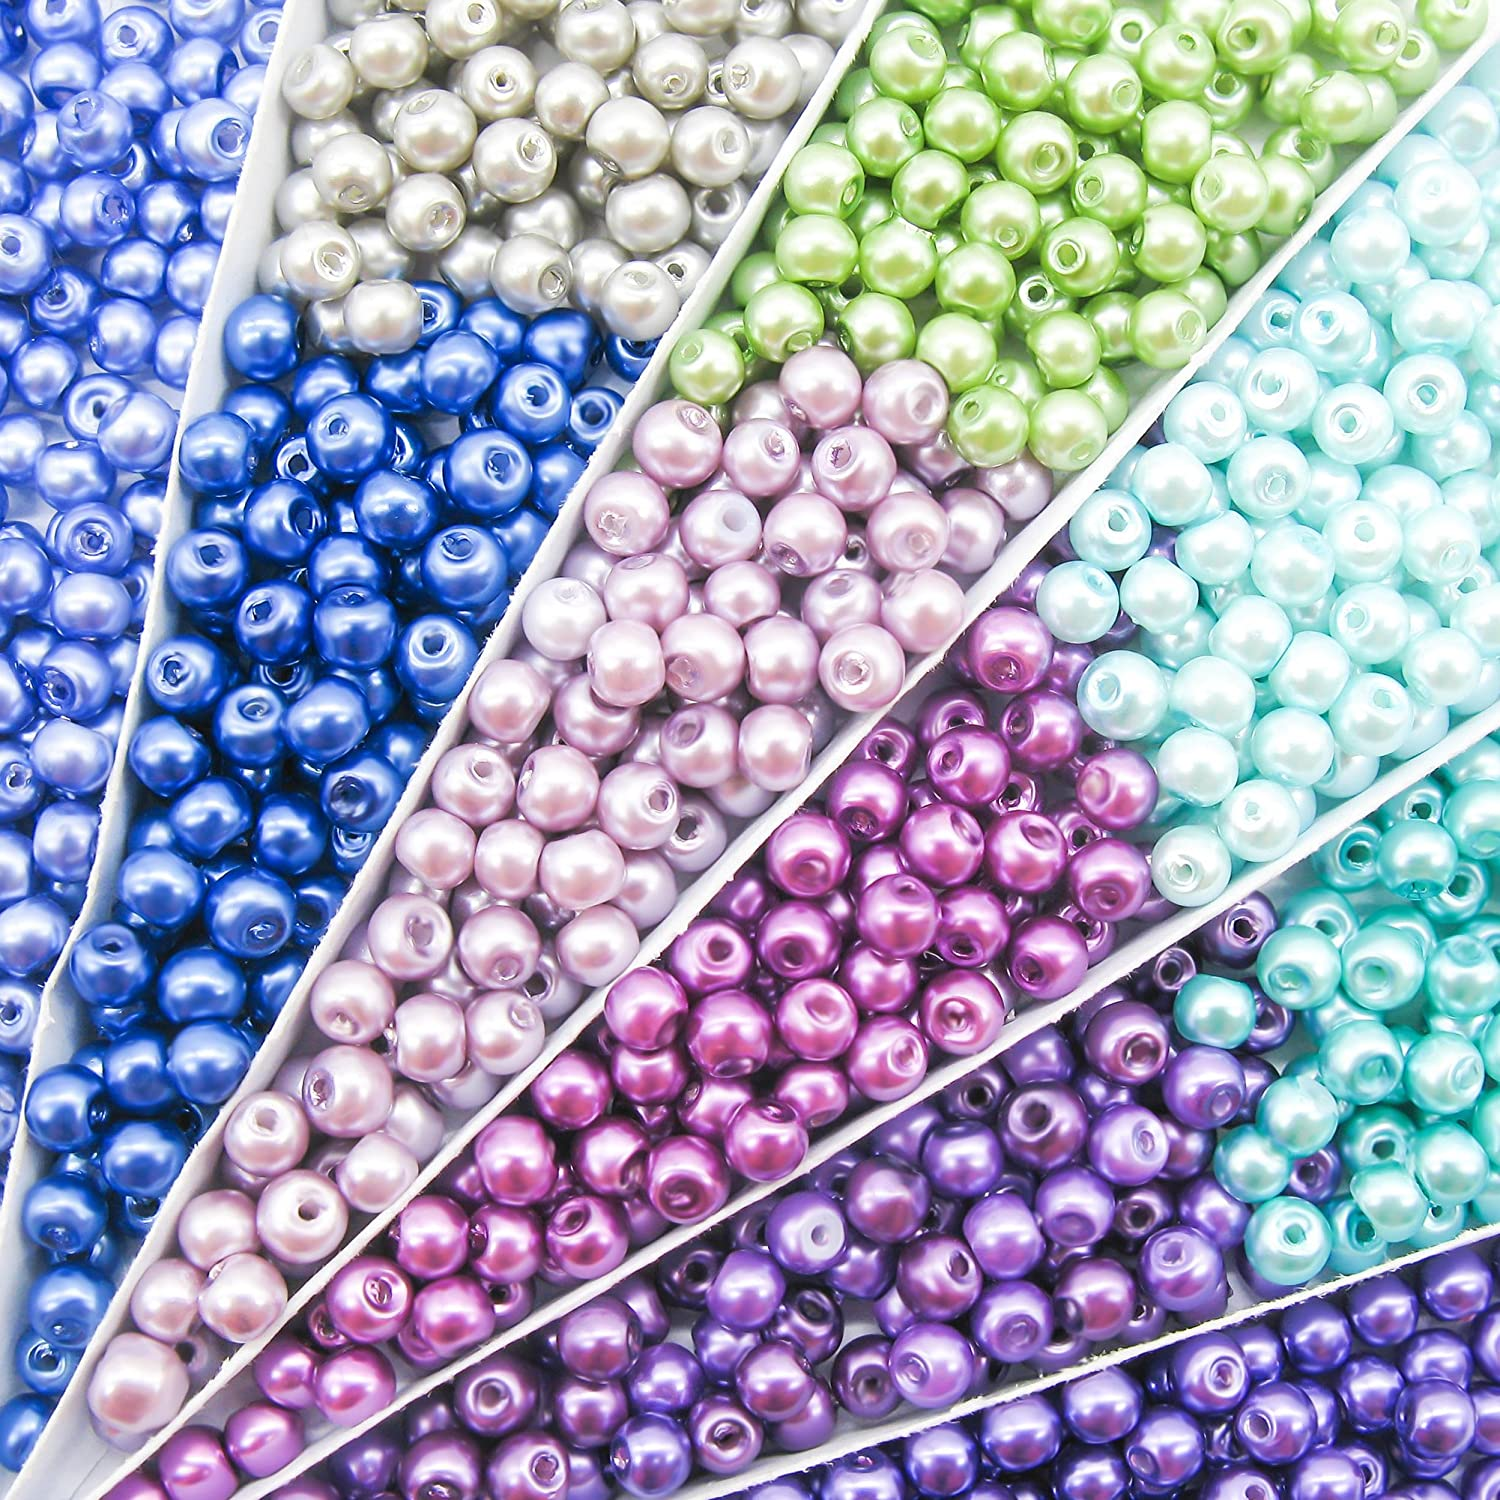 TOAOB 500pcs 6mm Round Tiny Satin Luster Glass Pearl Beads Multi Colors Loose Beads Wholesale for Jewelry Making CLB0058